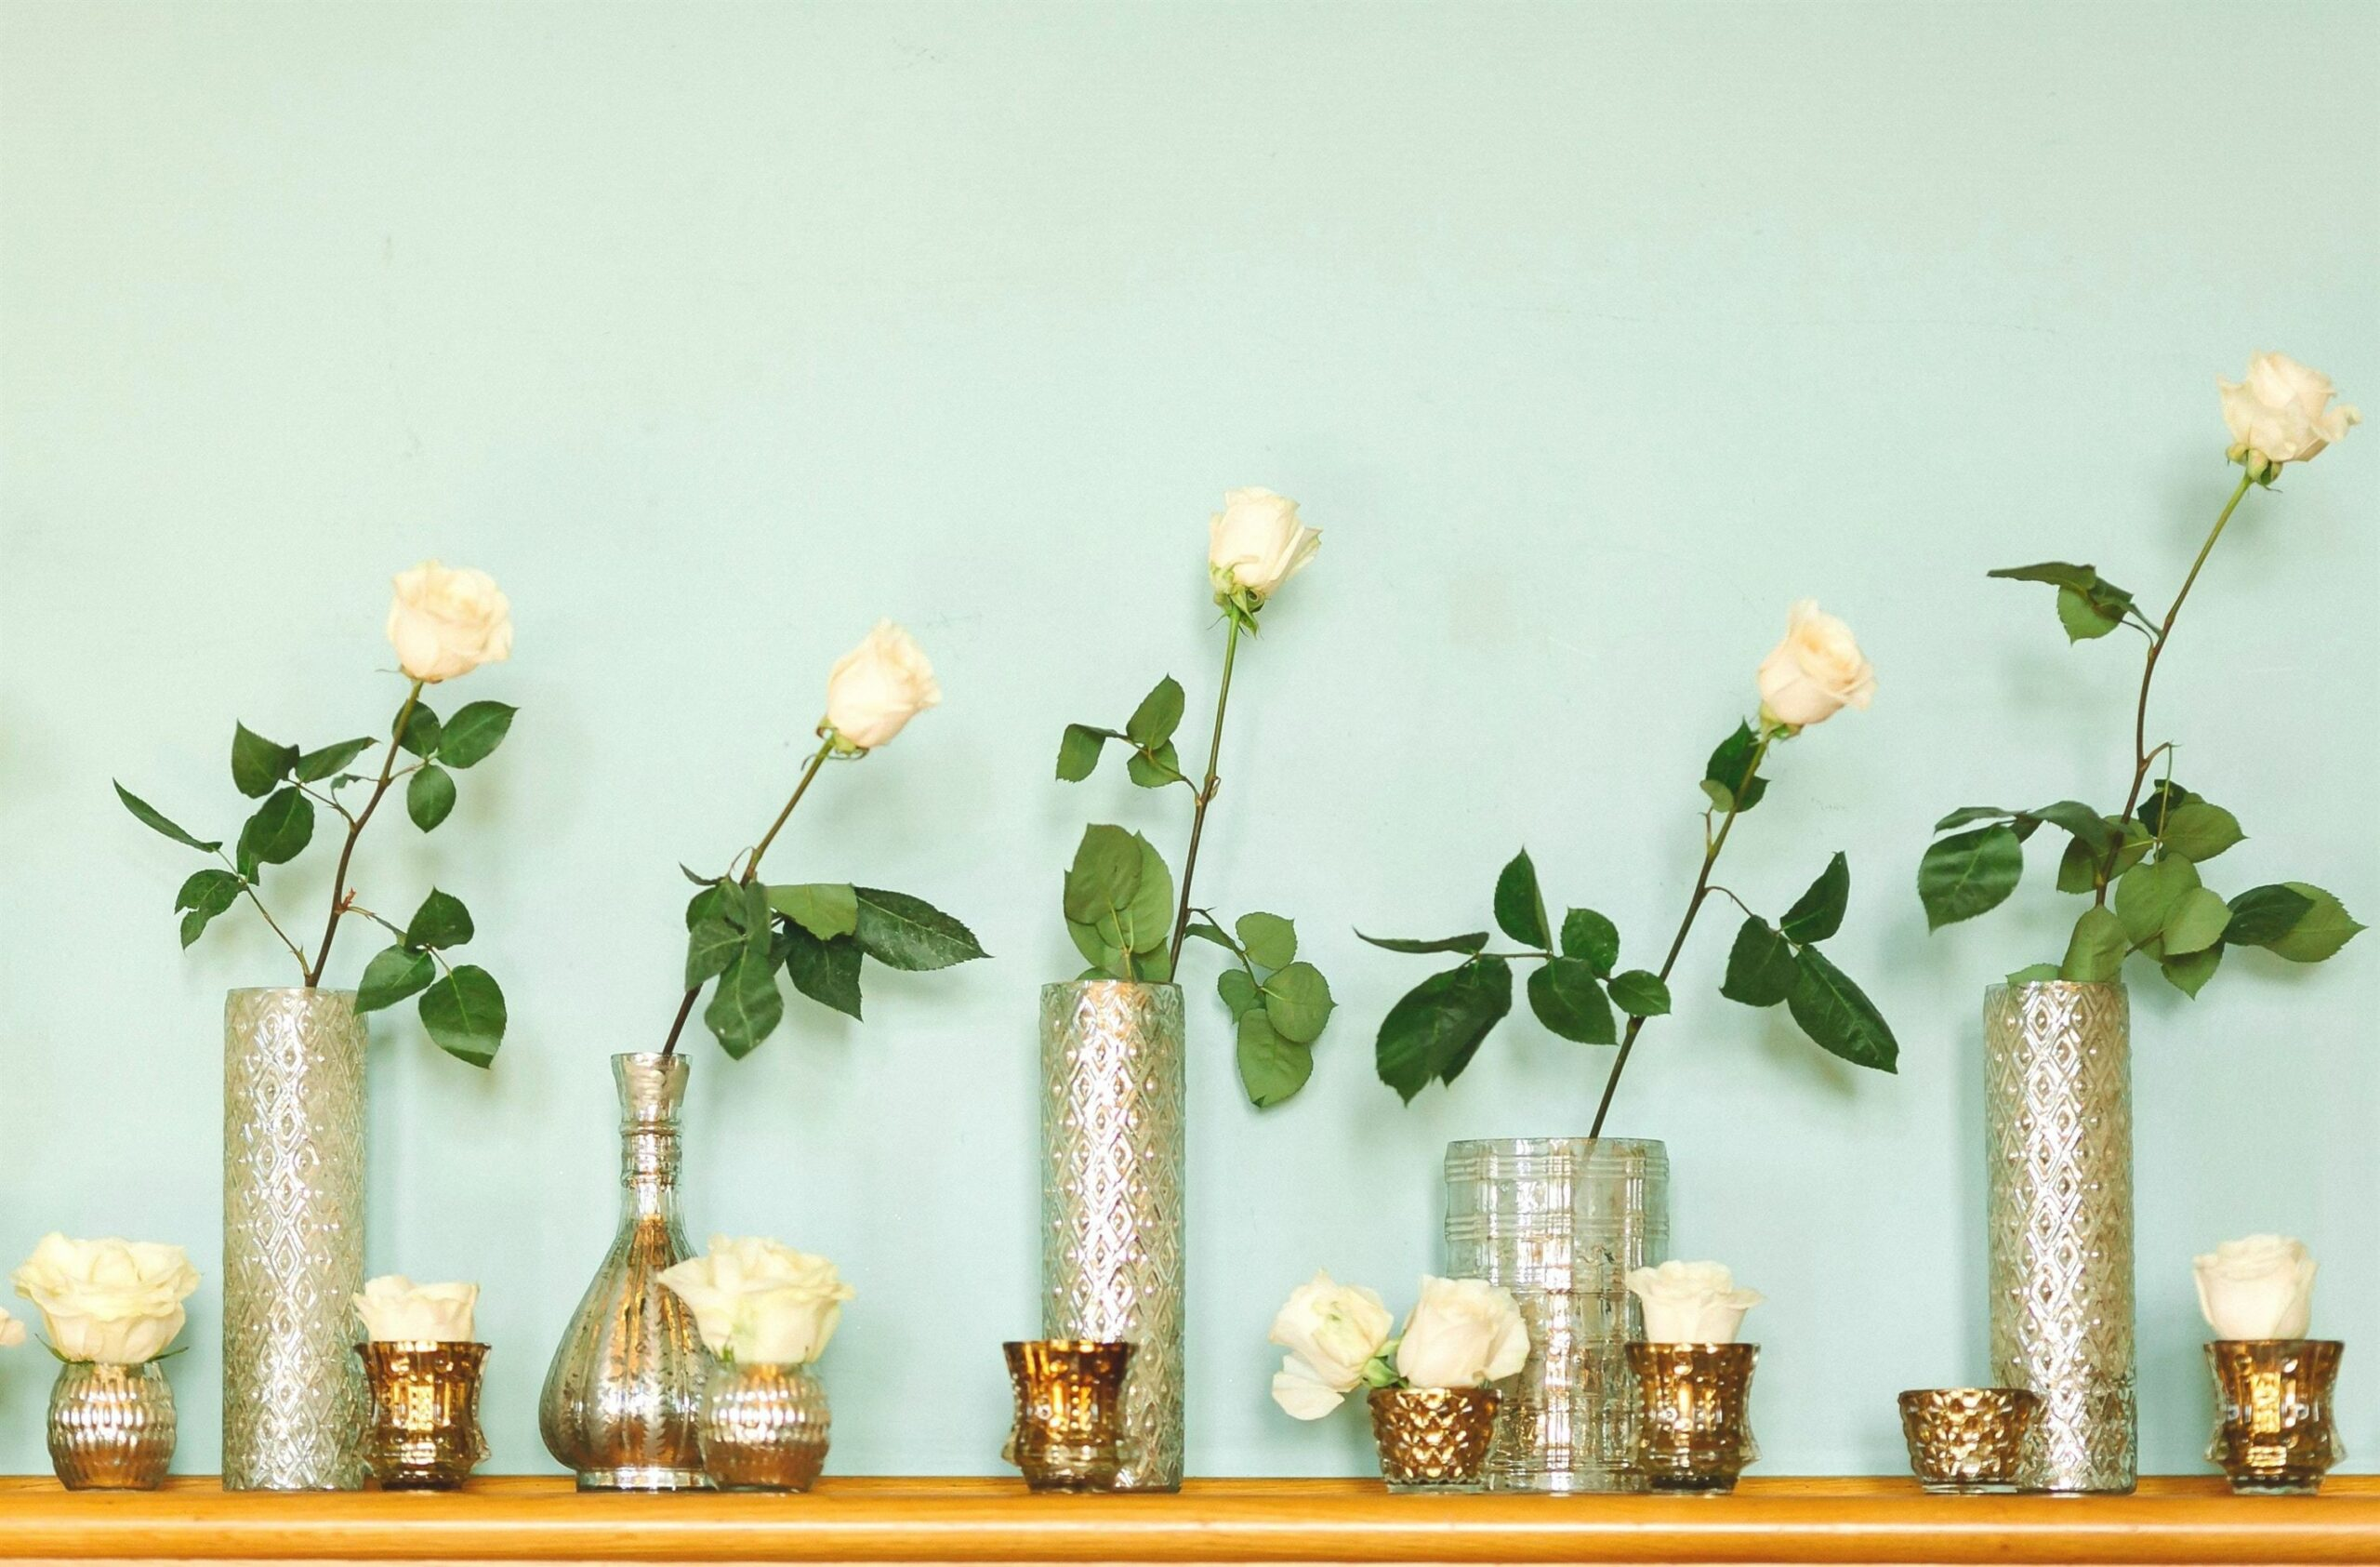 Pin on d i y home decoration - home decor york pa